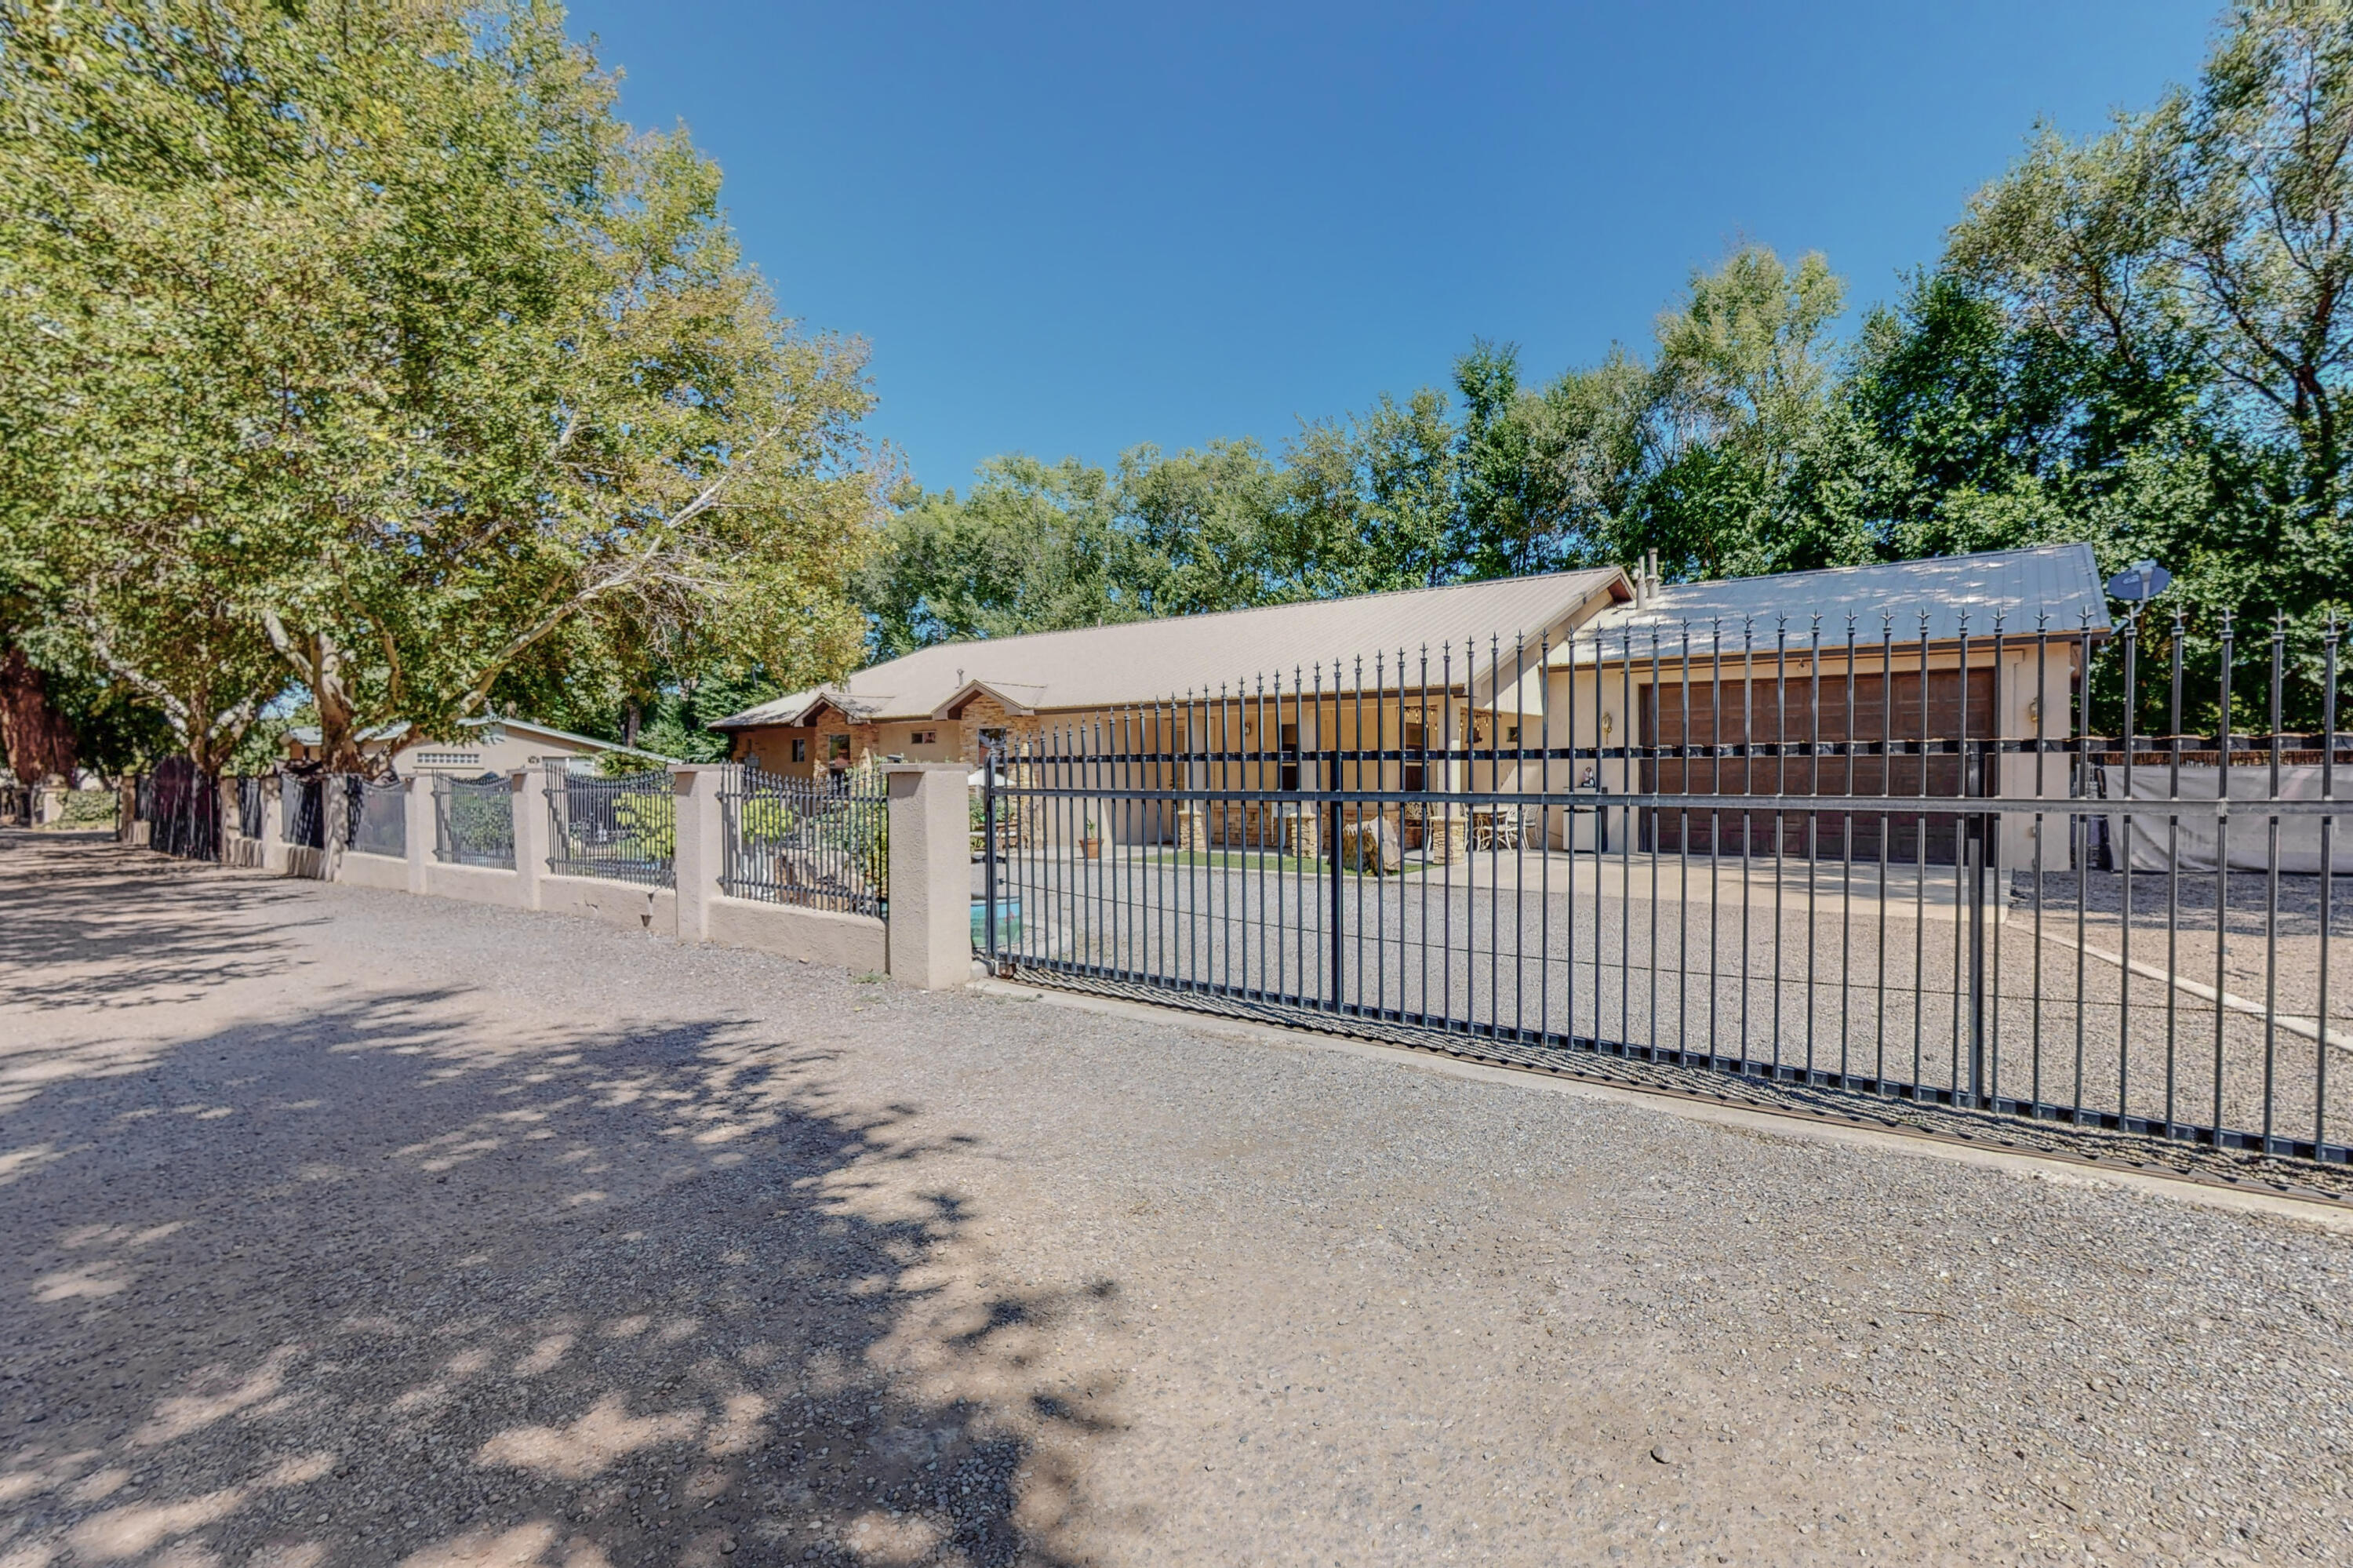 This private North Valley home is situated on a very private 0.38 acre lot. There are only 4 lots in the cul-de-sac with a private main gated entry and the home is also fully fenced with its own private entry gate, latia fencing was recently added to the back fence. The location offers very quick access to I-25 and only a few hundred yards from a Rail Runner stop, this home is ideal for commuters. This unique floor plan is truly one of a kind. The home is very open and spacious, great natural light, recent updates include wood panel accent walls, recent paint. Kitchen is open with a breakfast bar and separate dining area. Large front porch and back patio for entertaining on warm summer nights. This home is truly beautiful. You have to see this property in person! Schedule a showing today.